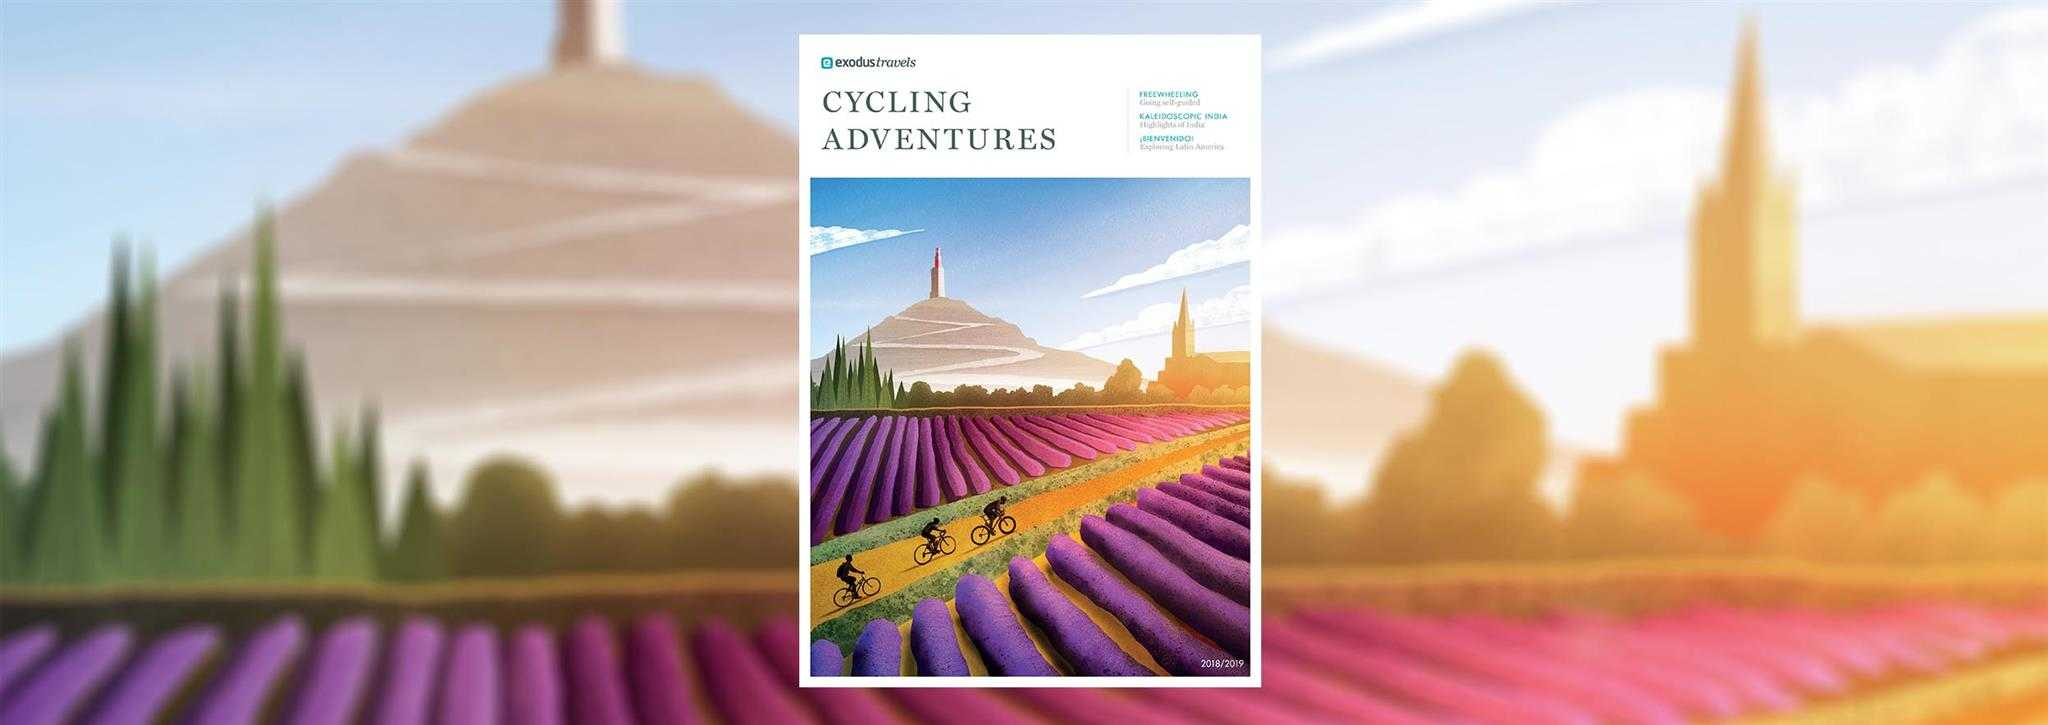 Cycling Brochure Cover